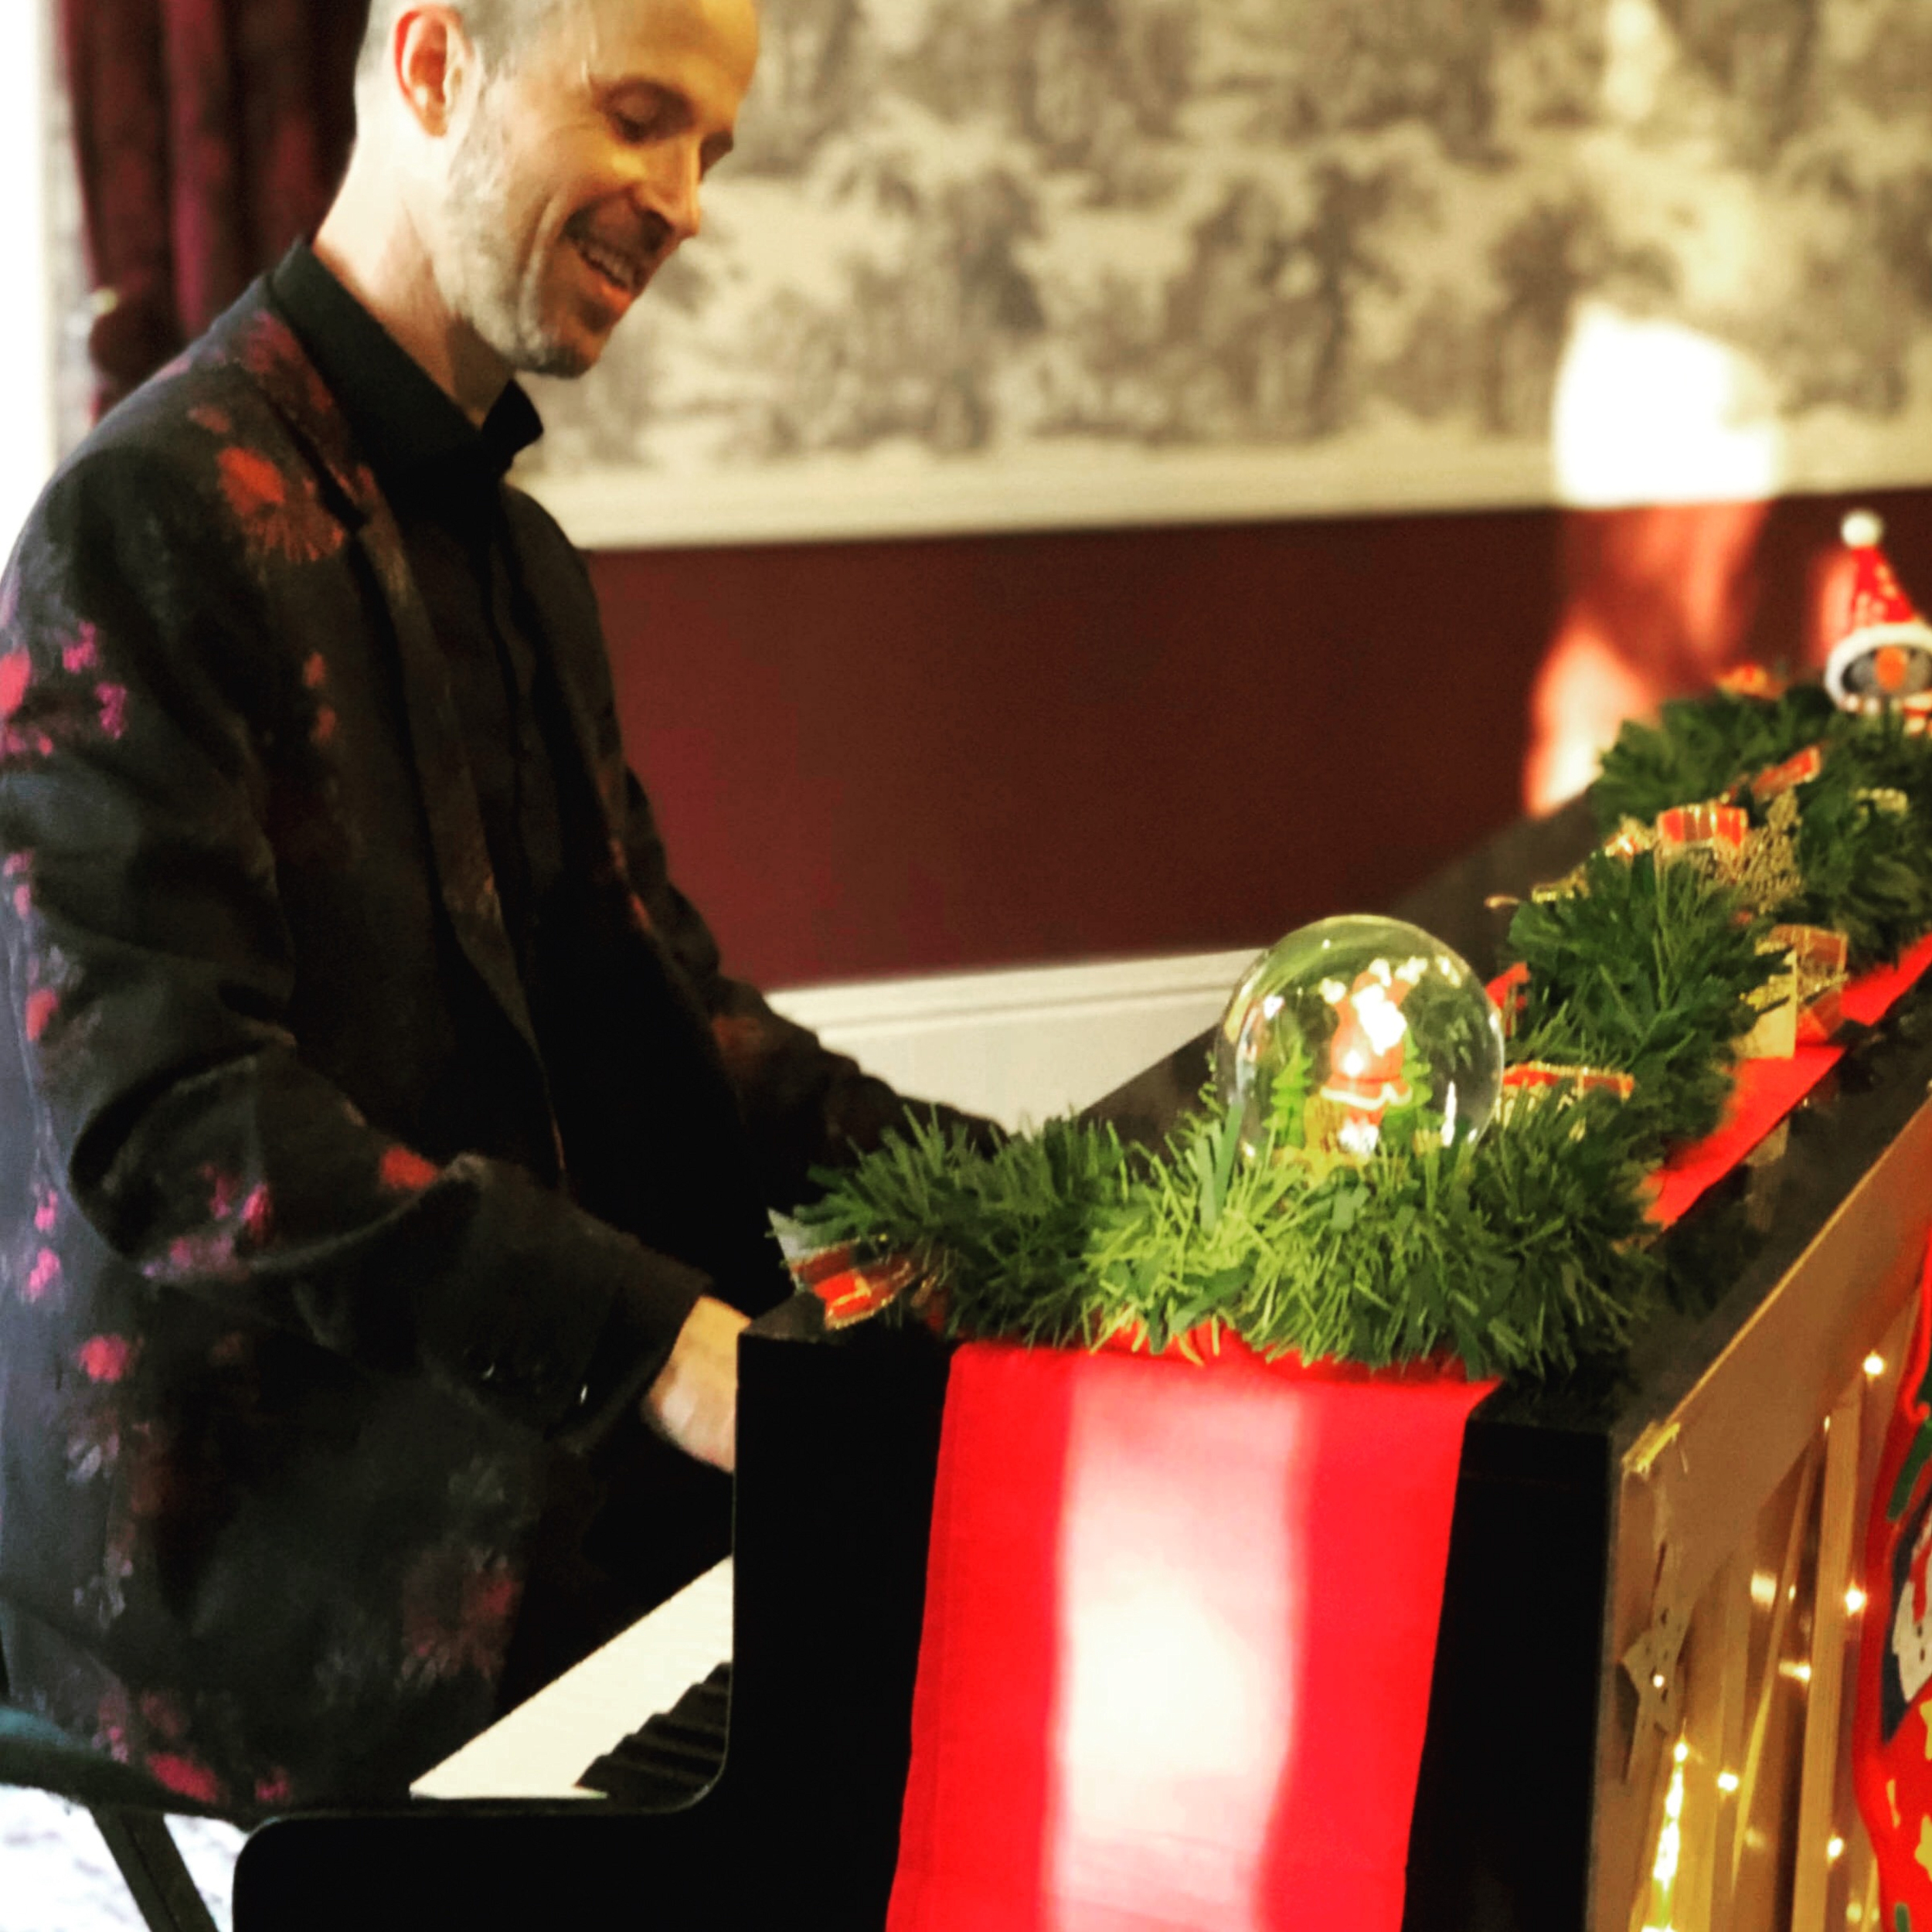 Performing Xmas tunes on mobile piano